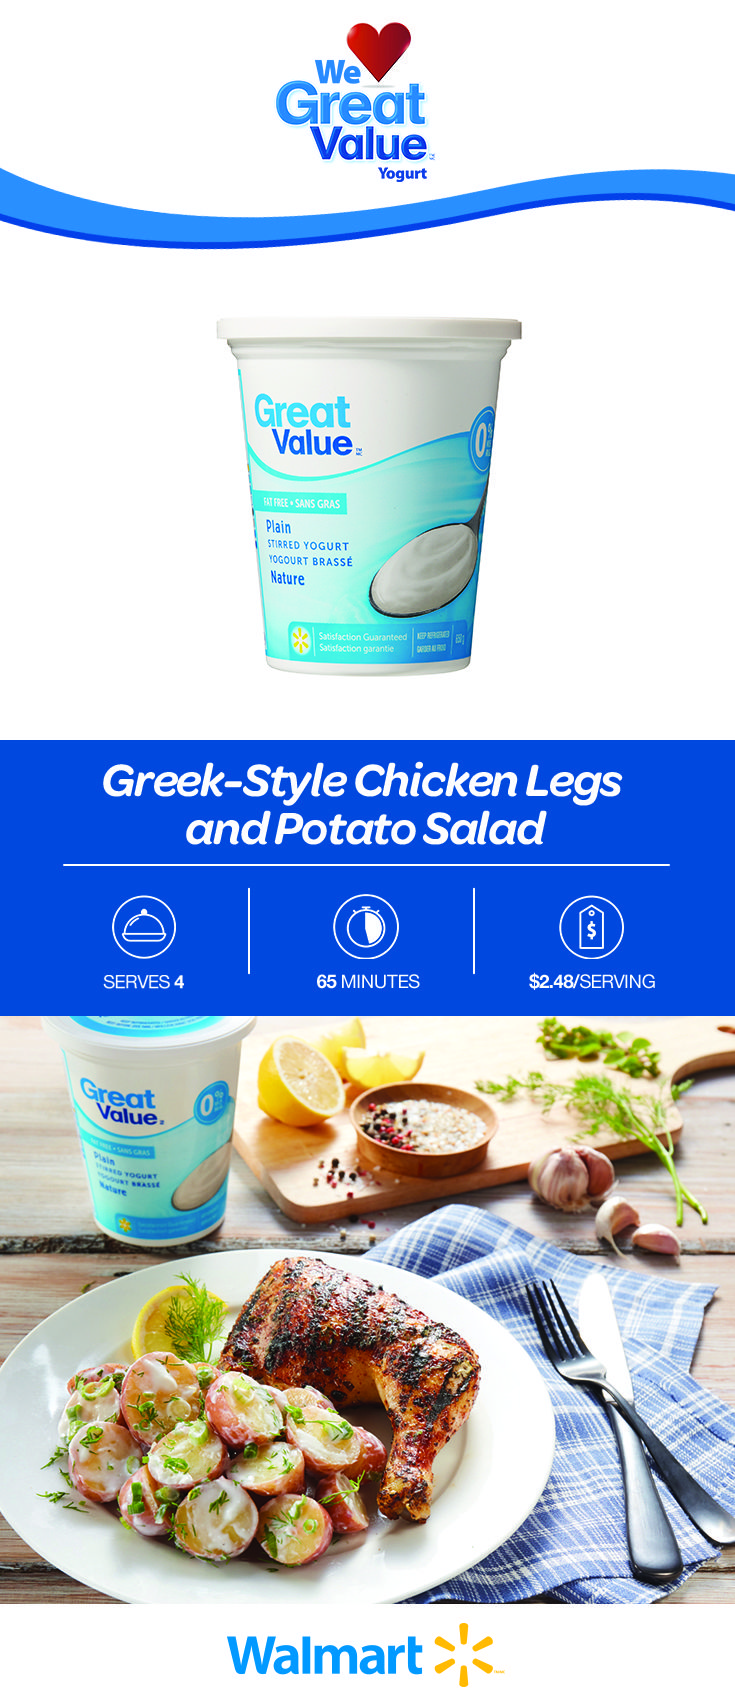 Weeknight cooking needs to be low-maintenance, so why not try these Greek-style chicken legs with creamy potato salad. The secret is our Great Value Yogurt! Only $2.48 per serving. Find this affordable recipe by clicking the link! #greekcuisine #chickenlegs #chickenrecipes #potatosalad #potatosaladrecipes #dinnerrecipes #easydinners #affordabledinnerrecipes